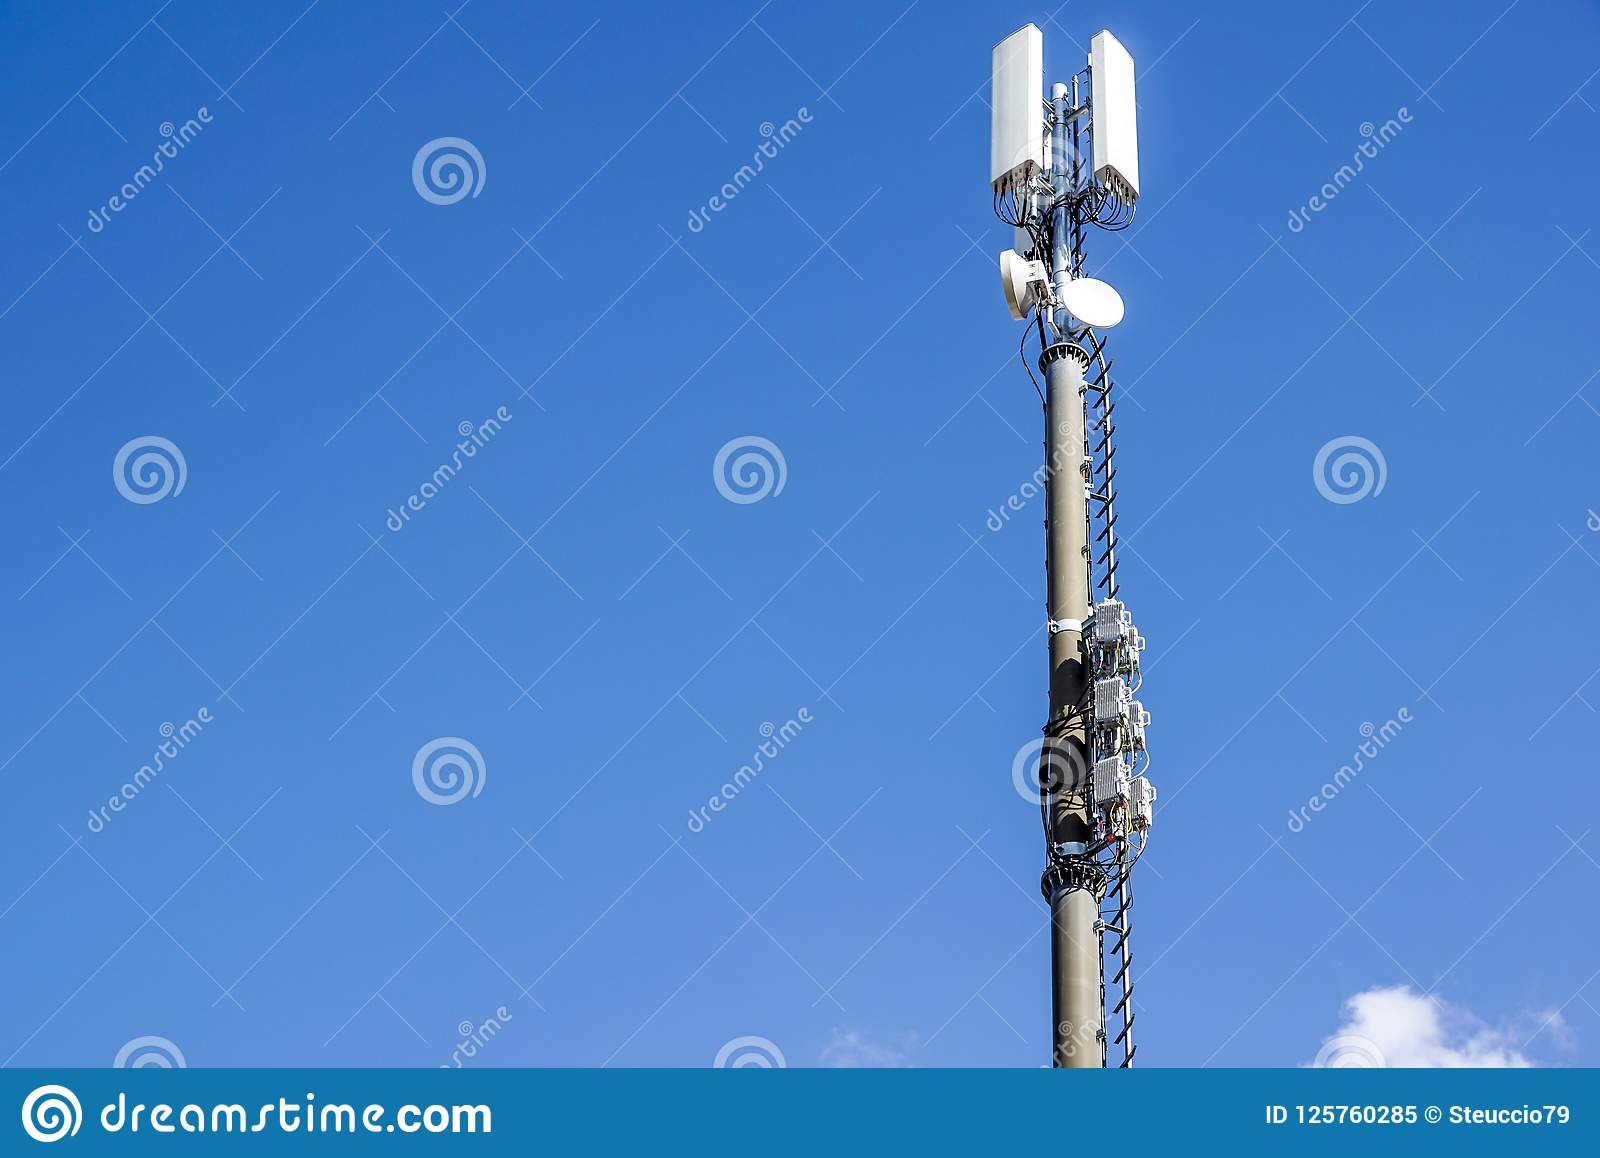 Mobile Phone Communication Repeater Antenna  Mobile Phone Network